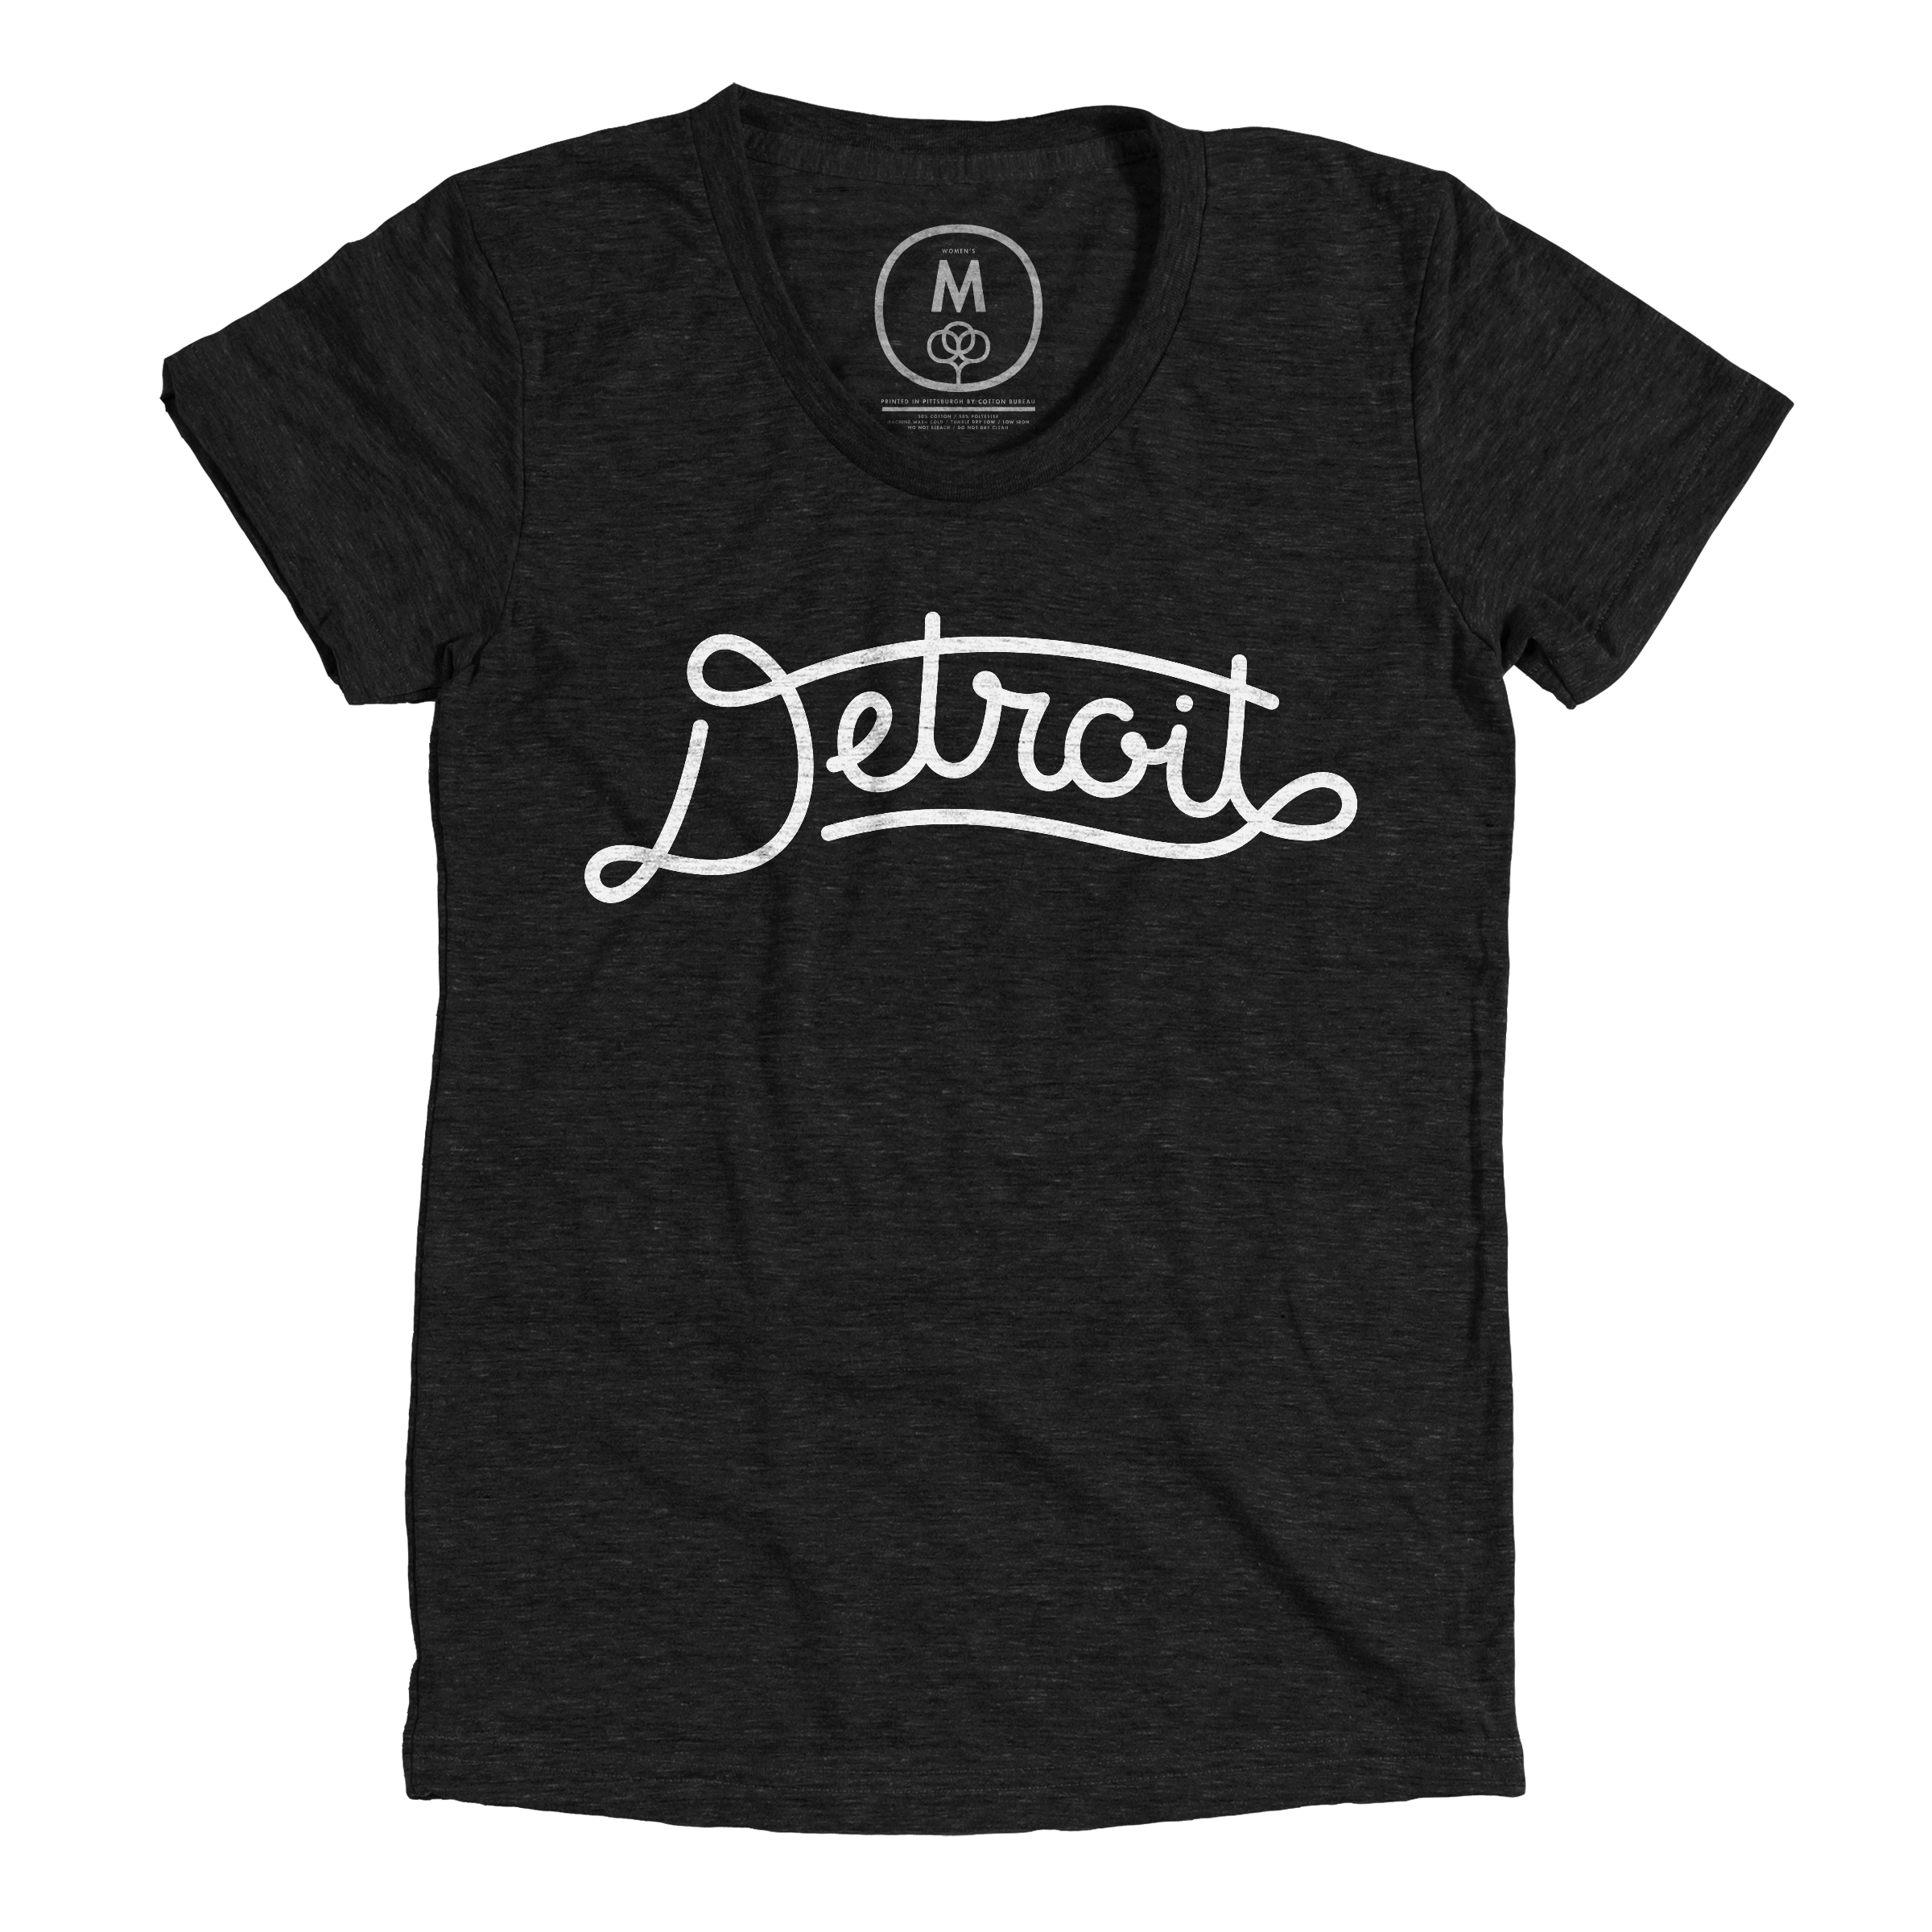 My City Vintage Black (Women's)